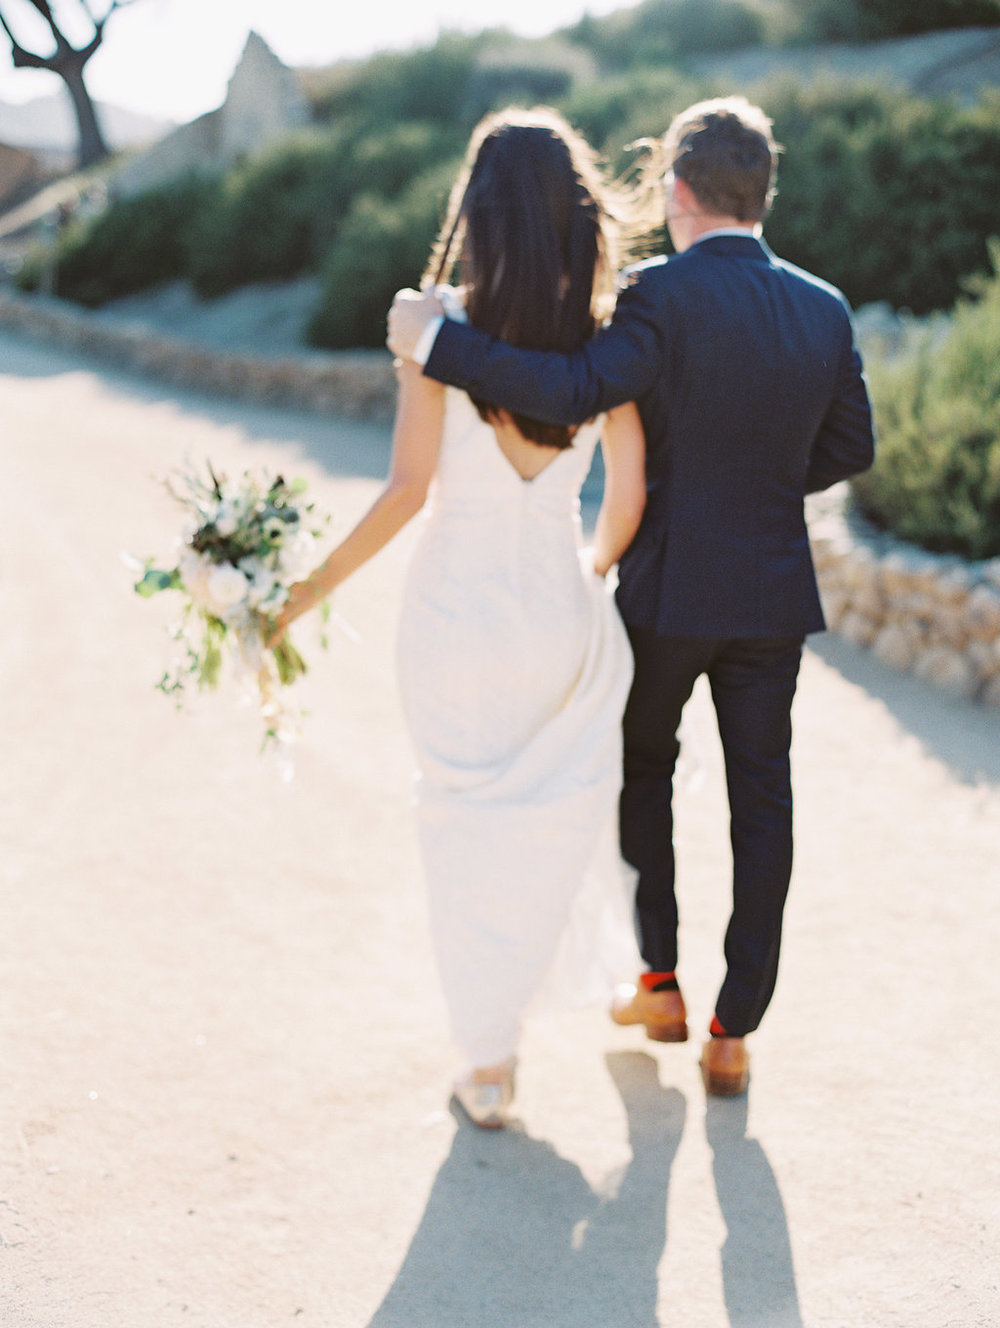 santabarbarawedding.com | Planning tips with Soleil Events | Santa Ynez Wedding